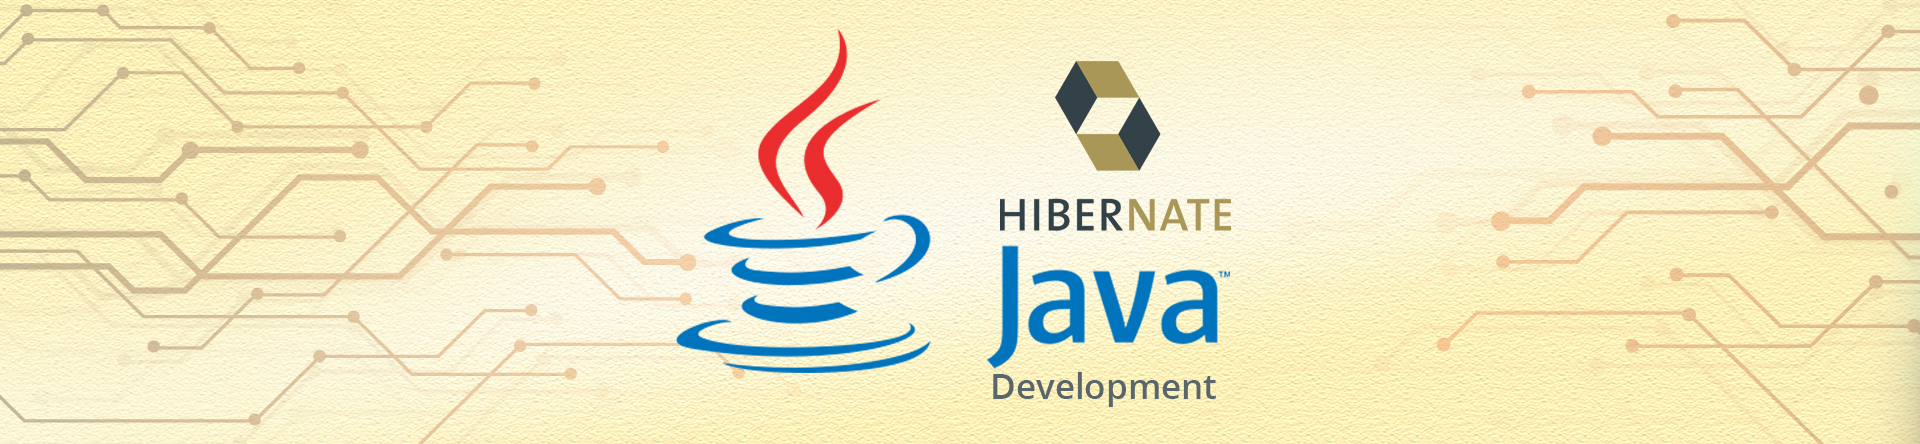 Java Hibernate Development Company, Hire Hibernate Developer